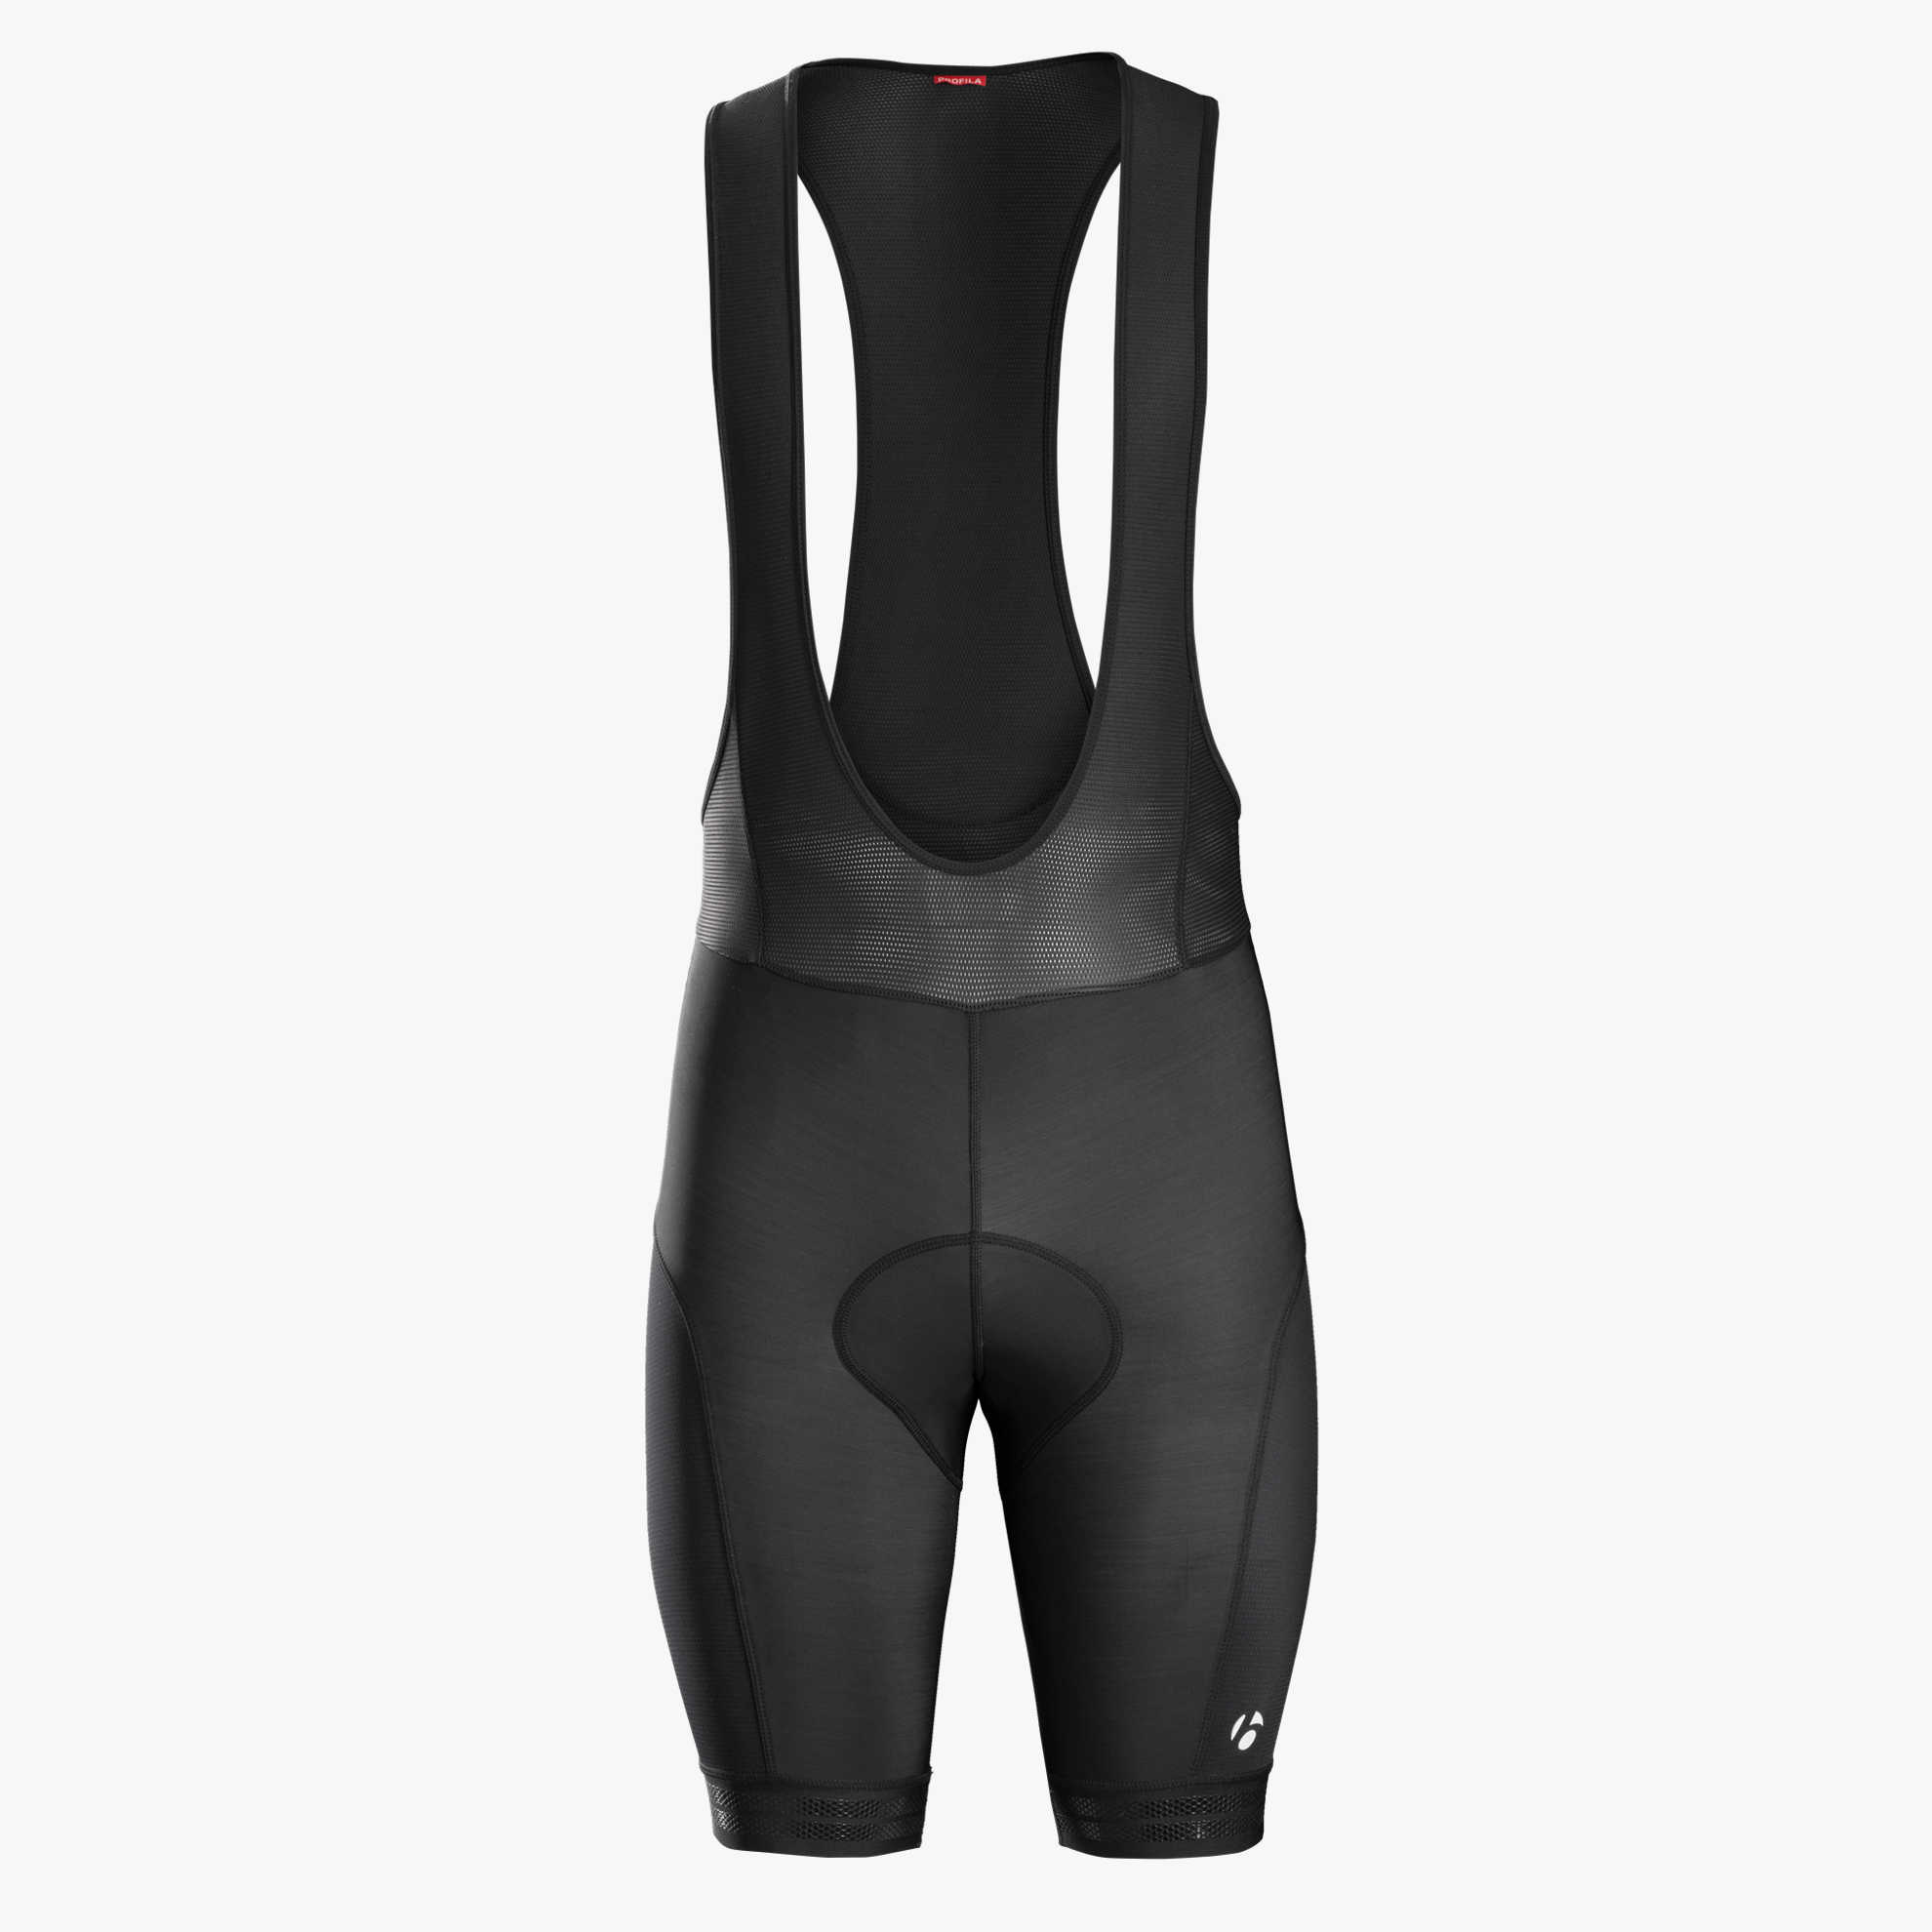 Review  Bontrager Circuit kit ups their apparel game at all levels ... b3769a7cf